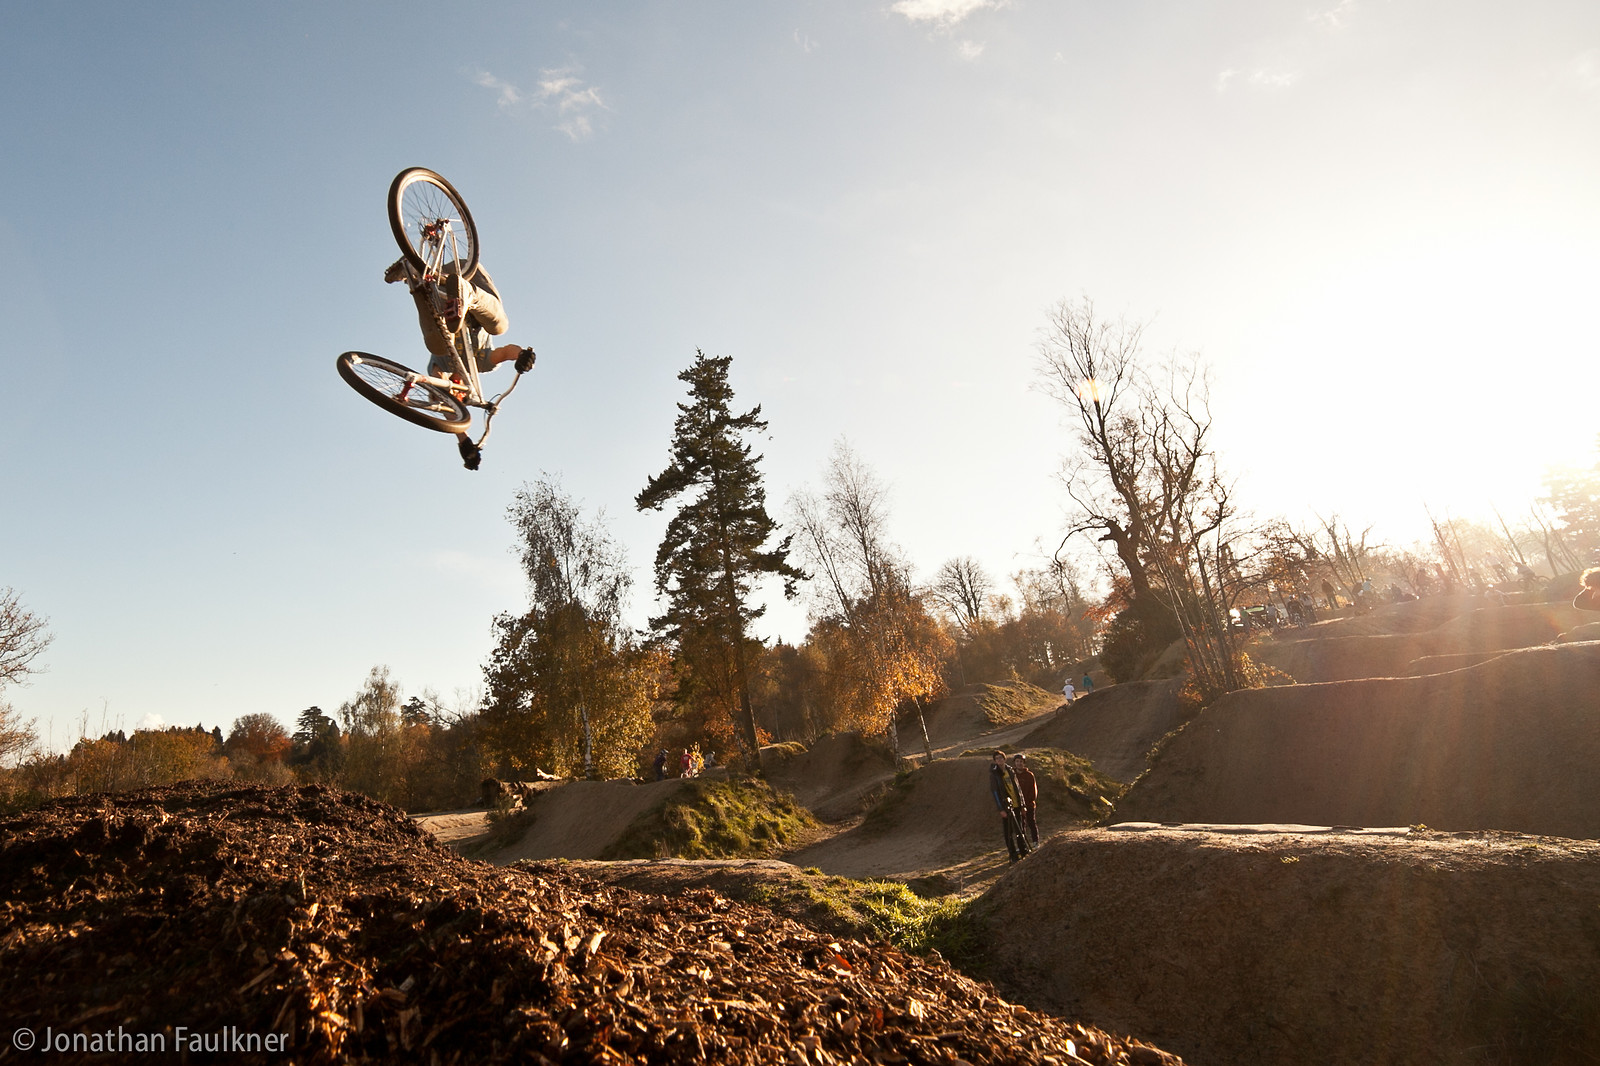 dumped - Jonny Faulkner - Mountain Biking Pictures - Vital MTB